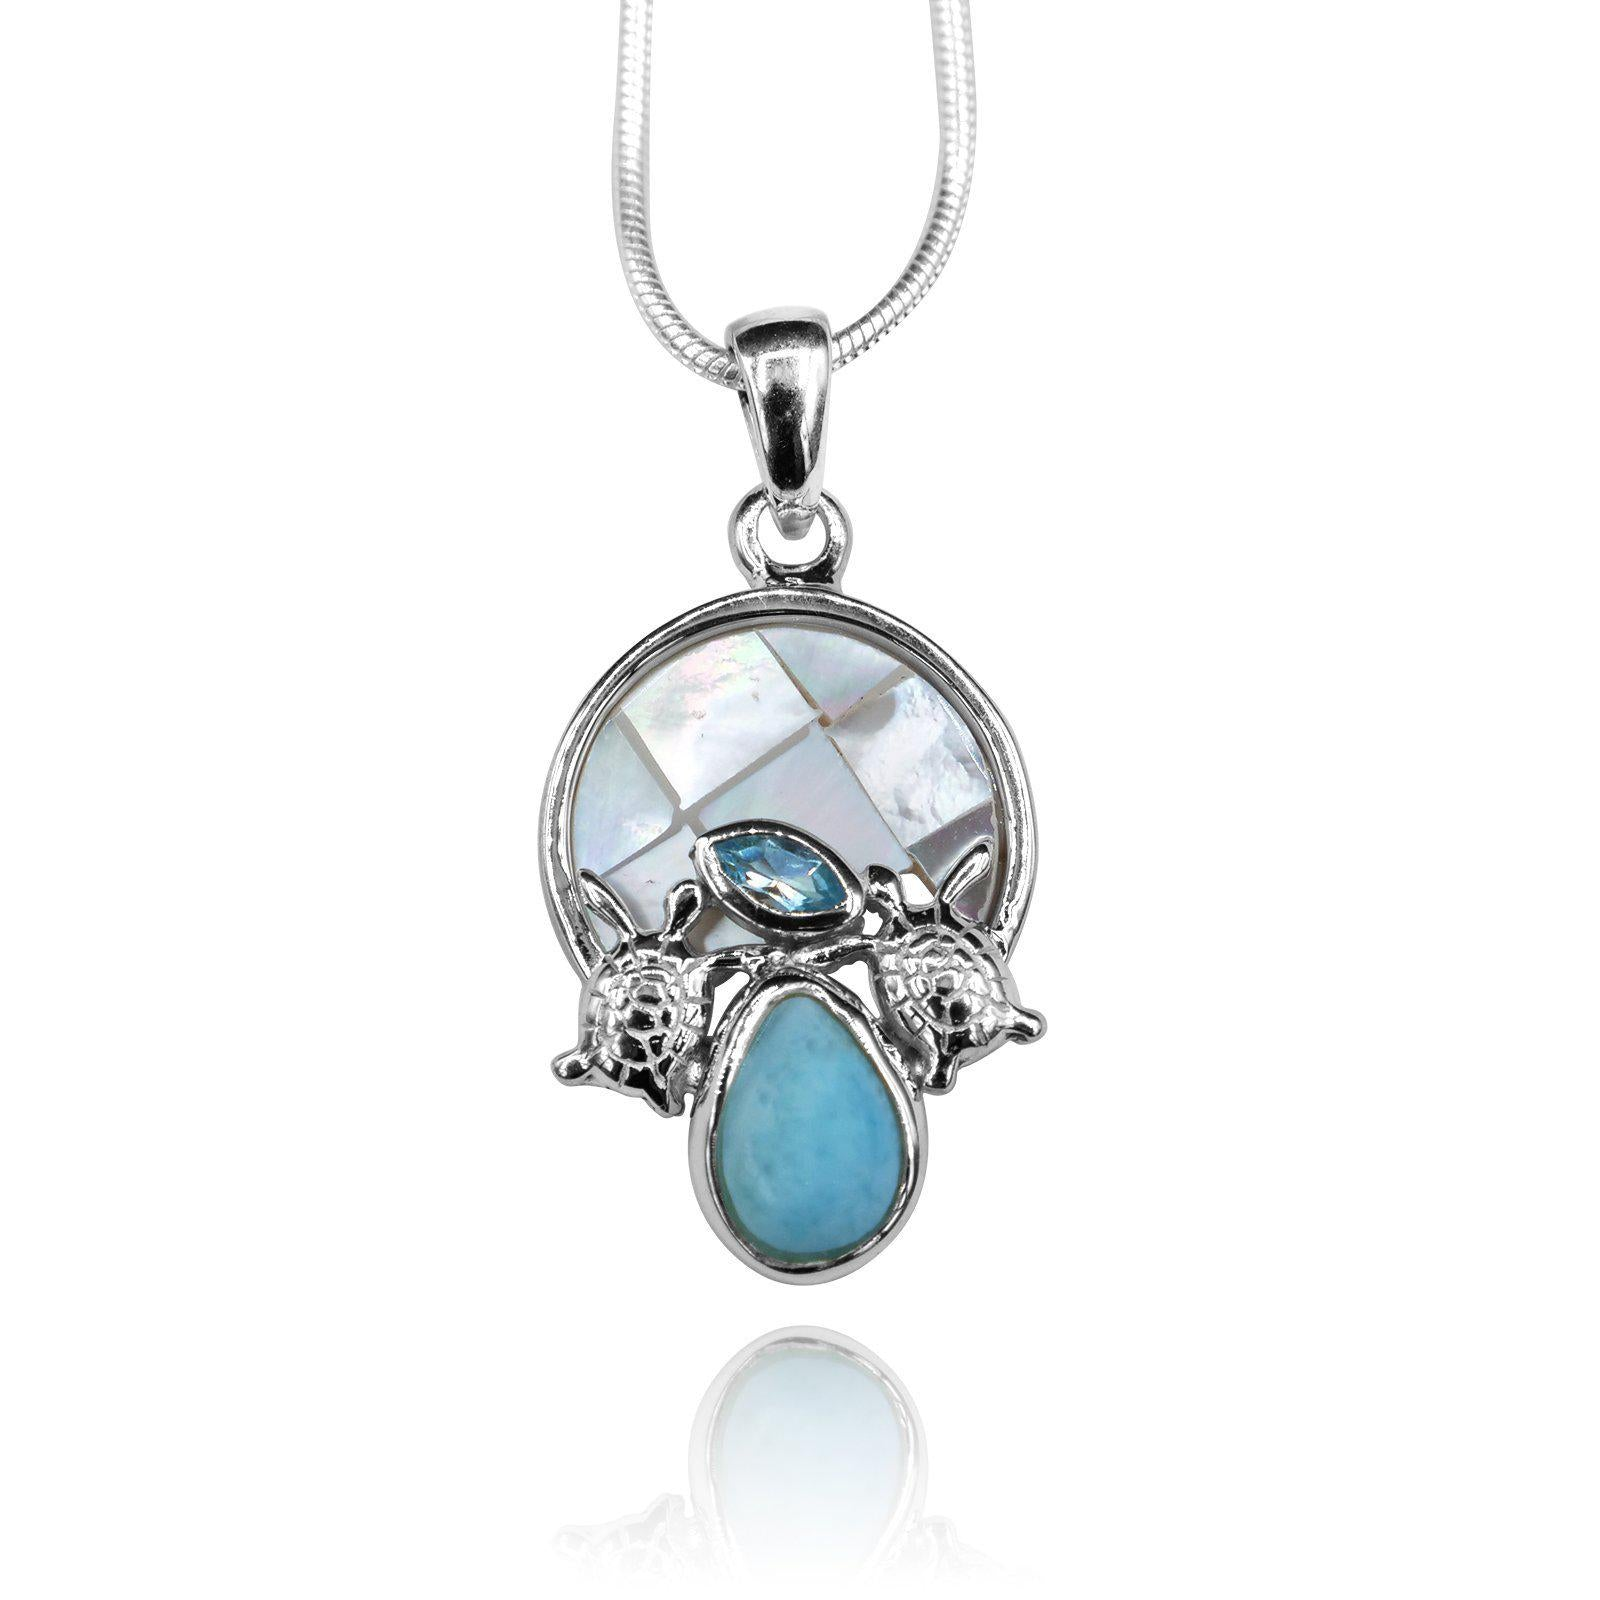 Sea Turtles Pendant Necklace with Blue Topaz, Mother of Pearl Mosaic and Larimar Stone